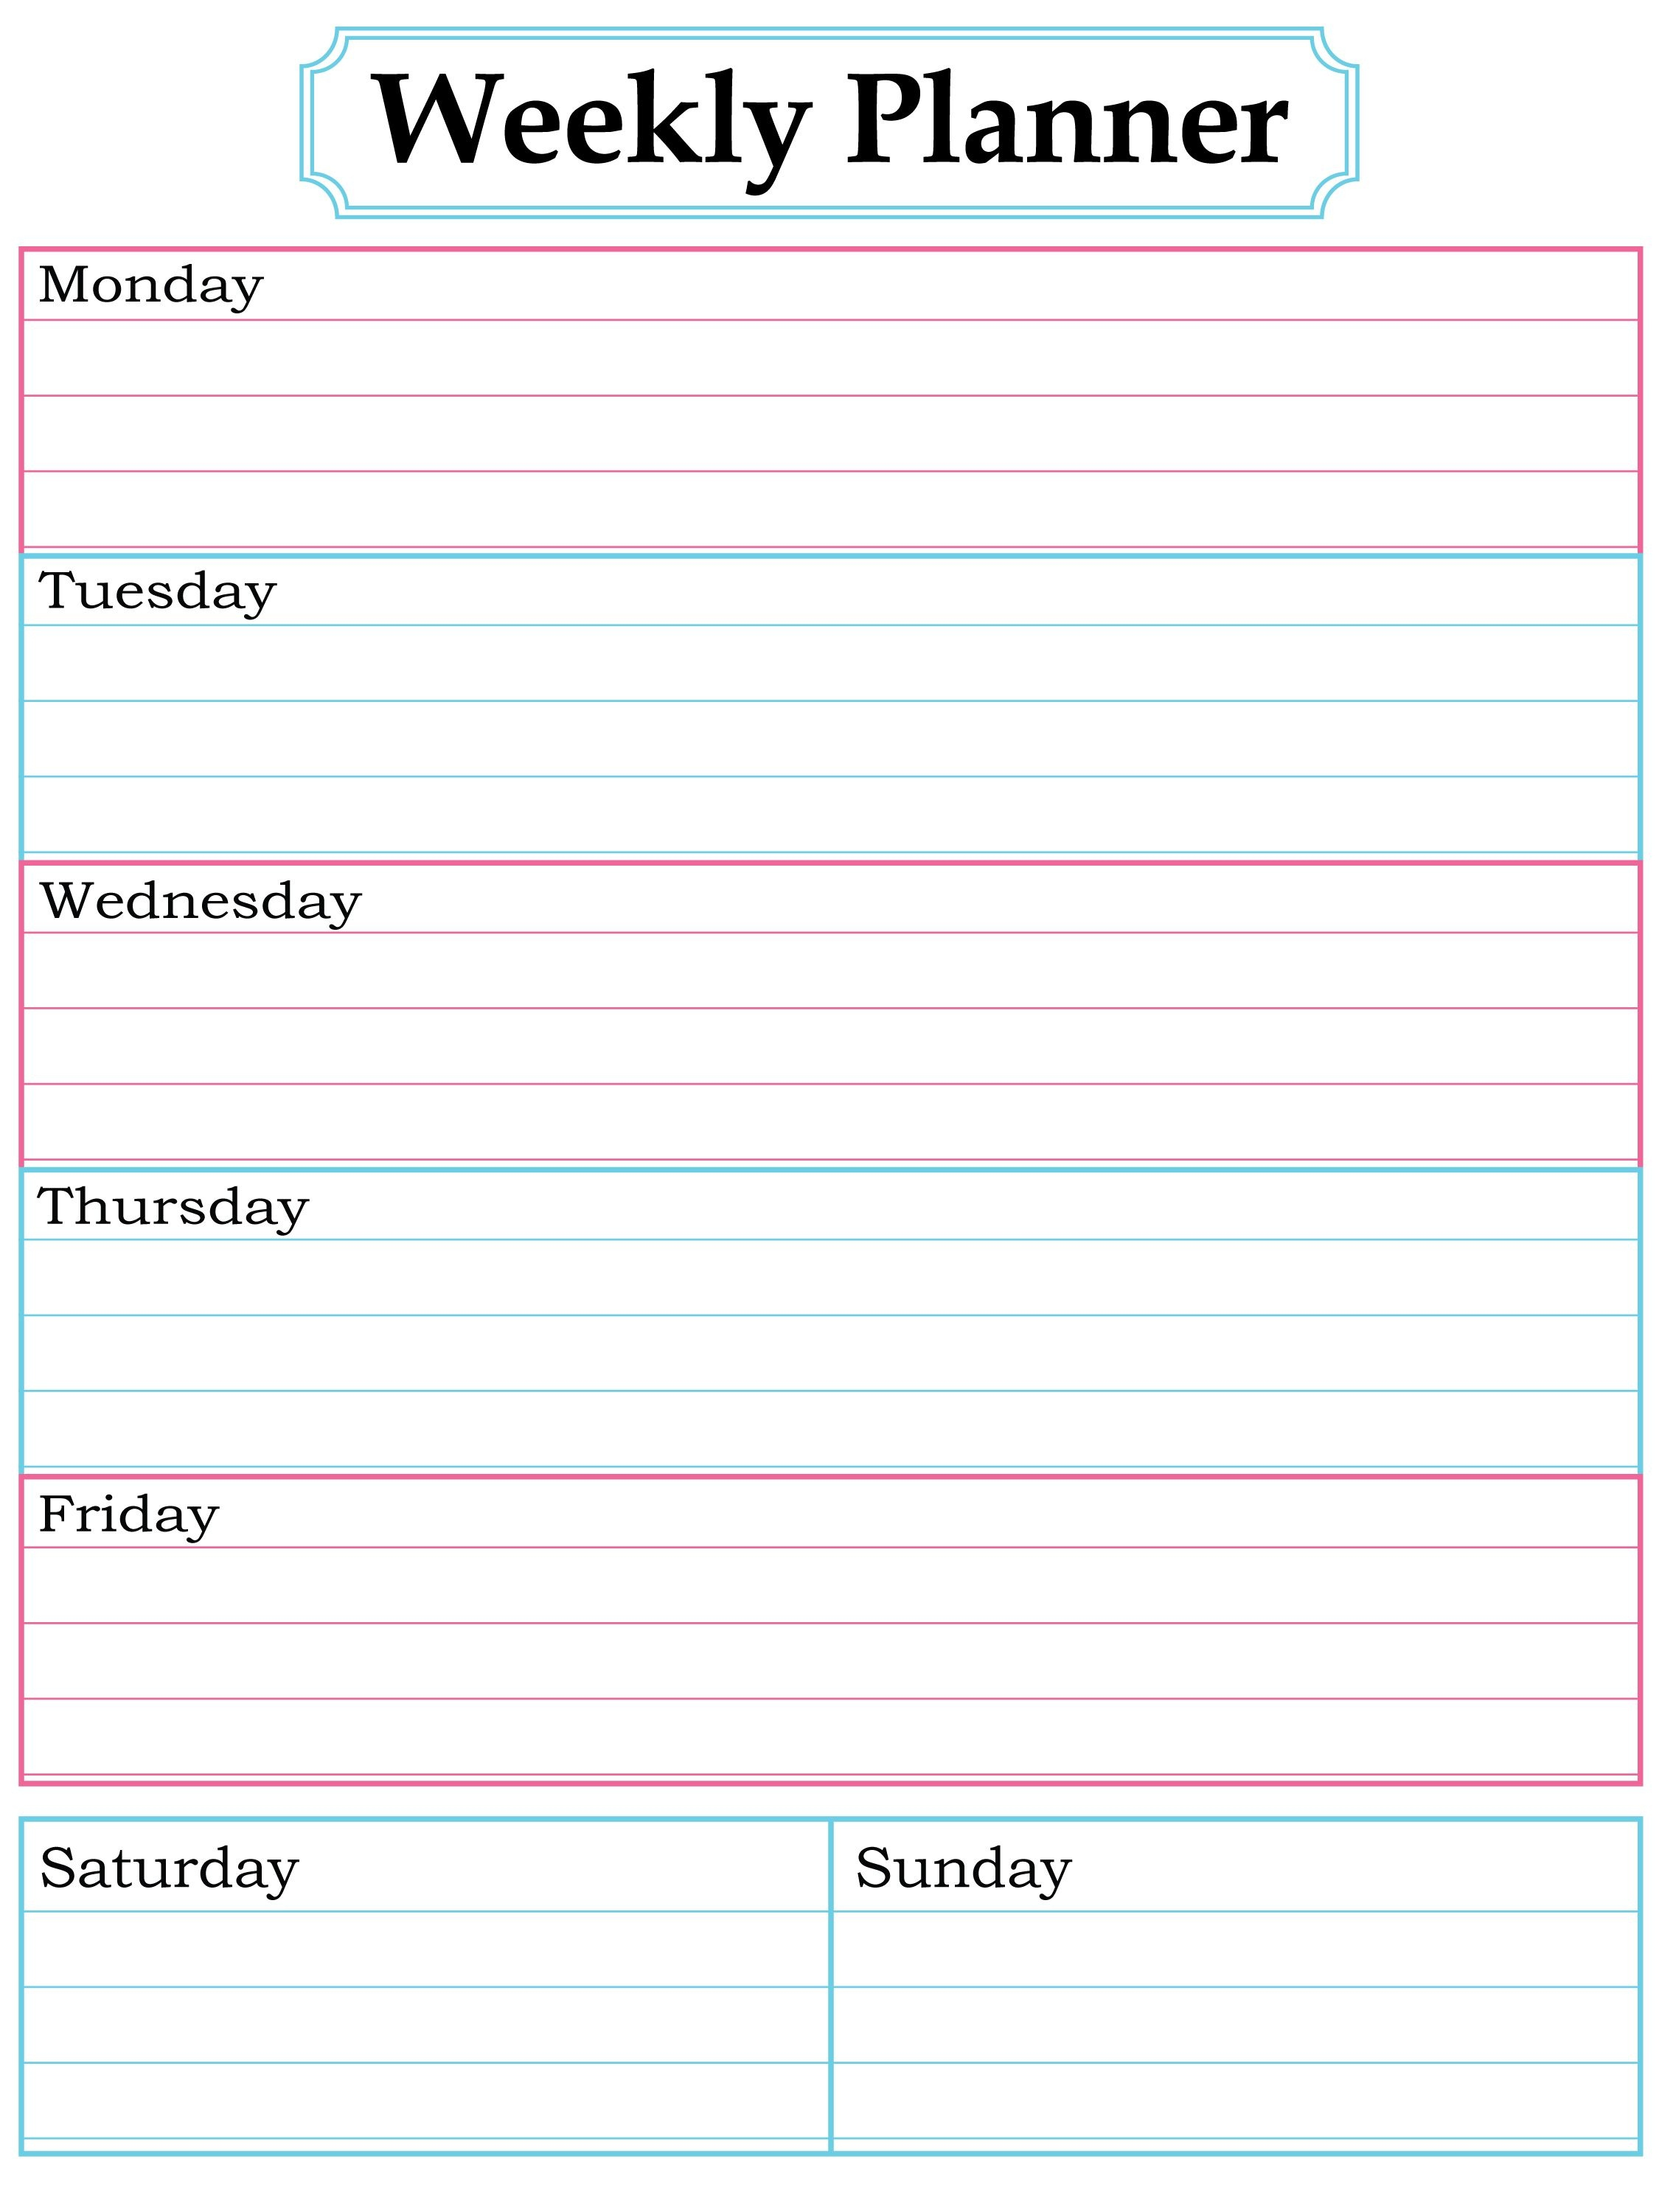 Weekly Planner Printable. Nice, Simple, Clean Lines. | School - Free Printable School Agenda Templates